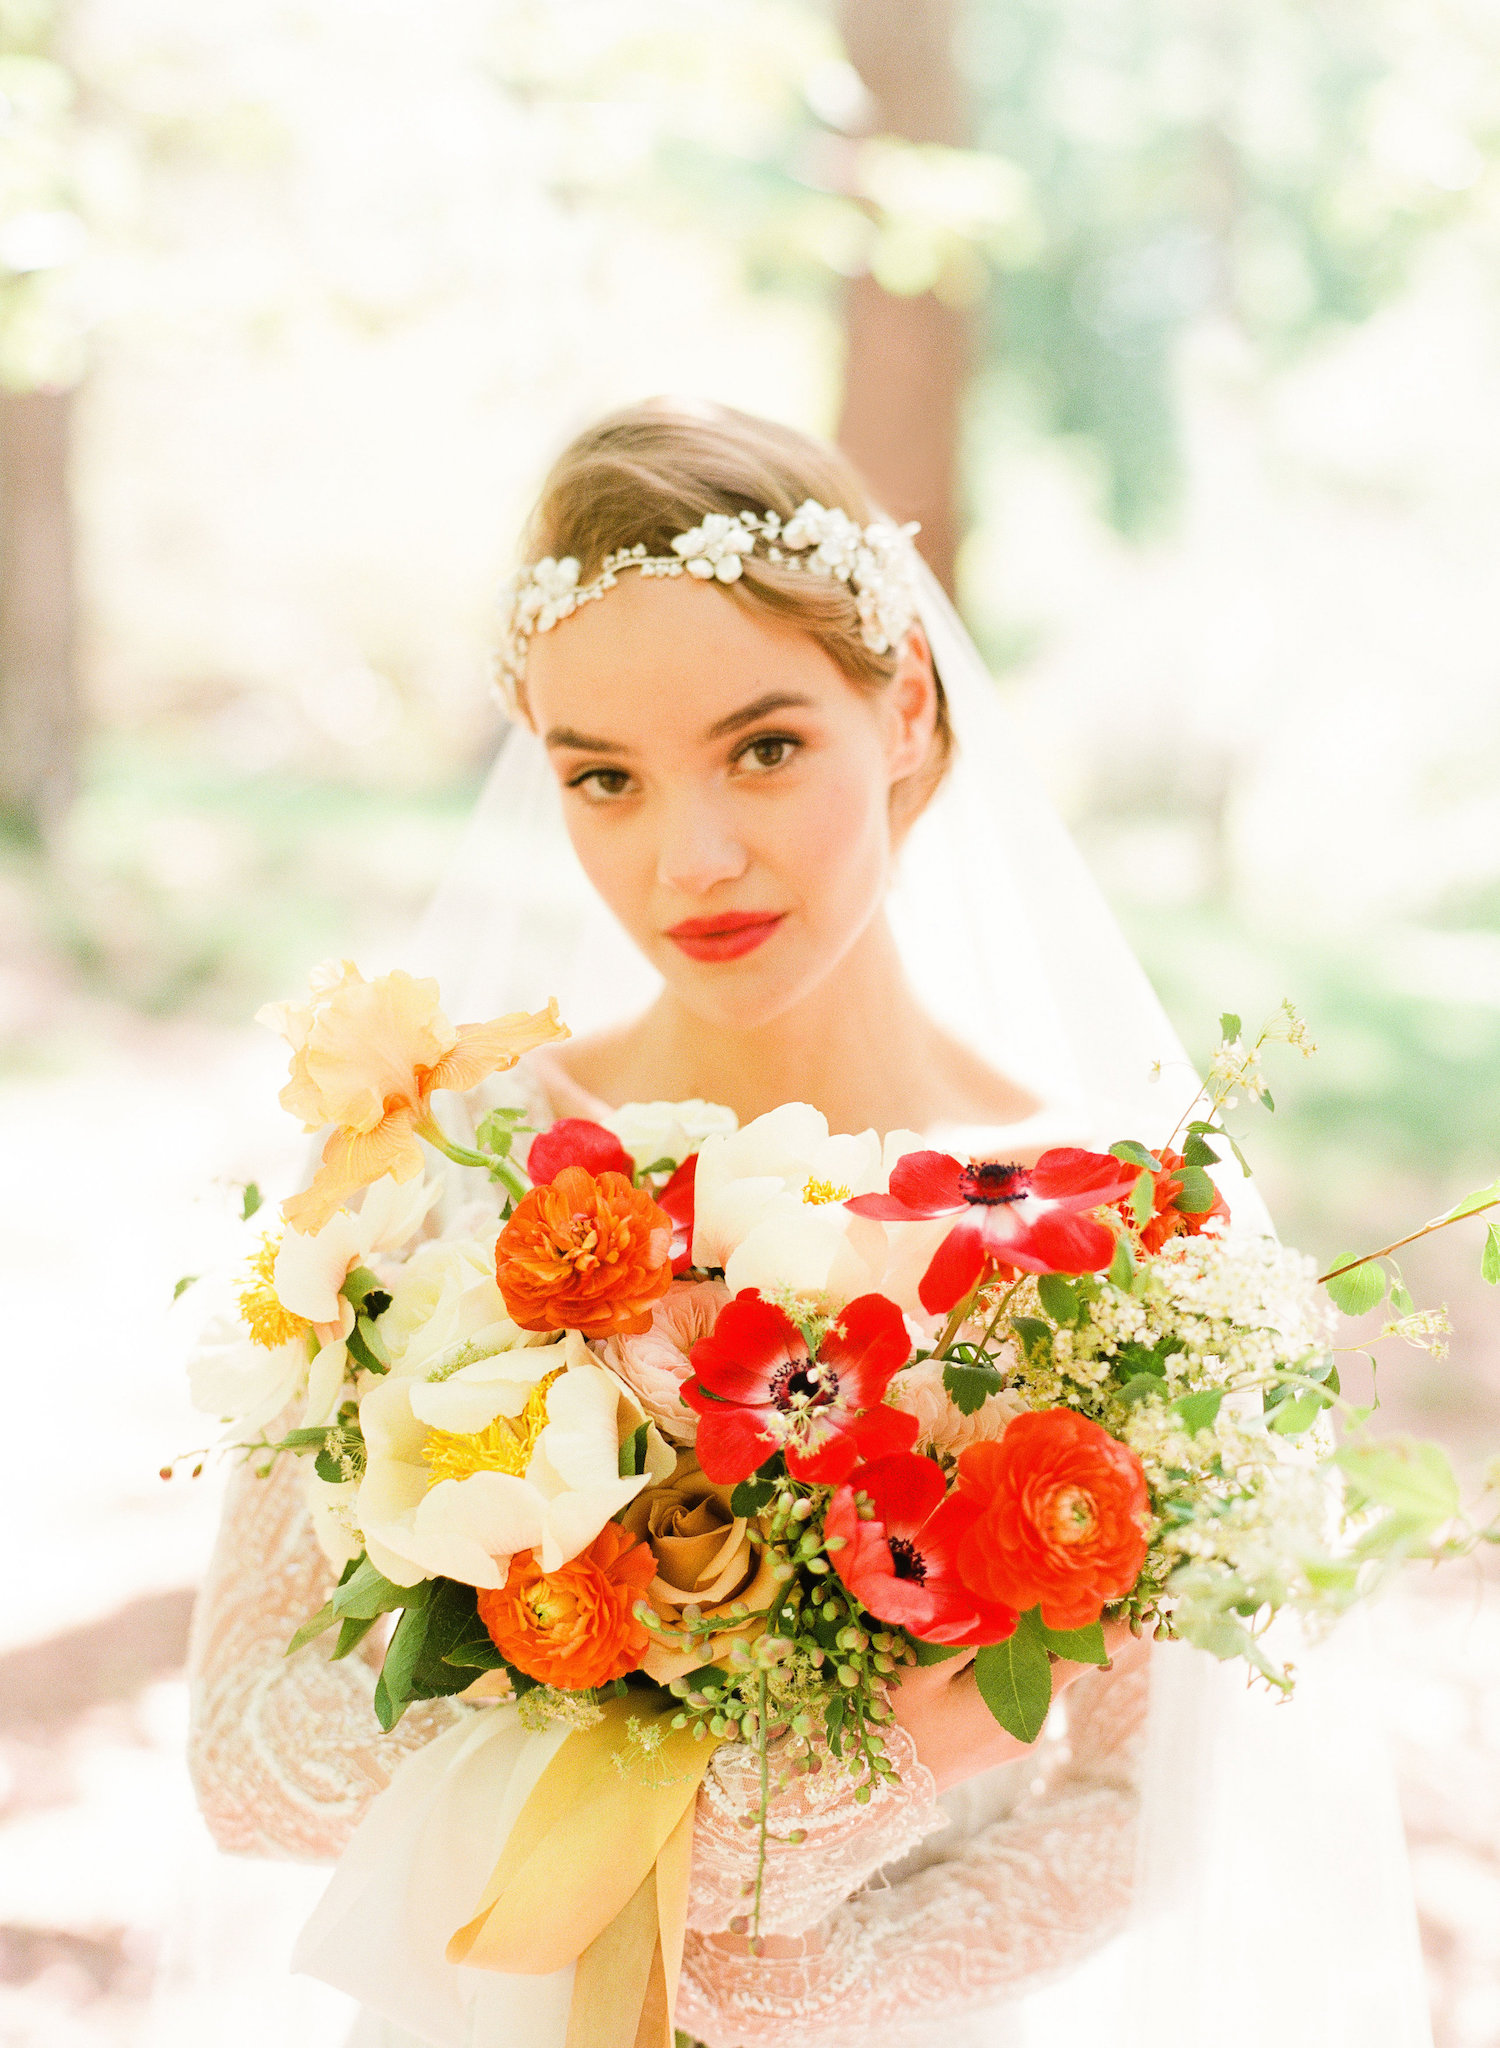 Morning Glow - Full Aperture Floral & Lindsay Madden Photography 11.jpeg